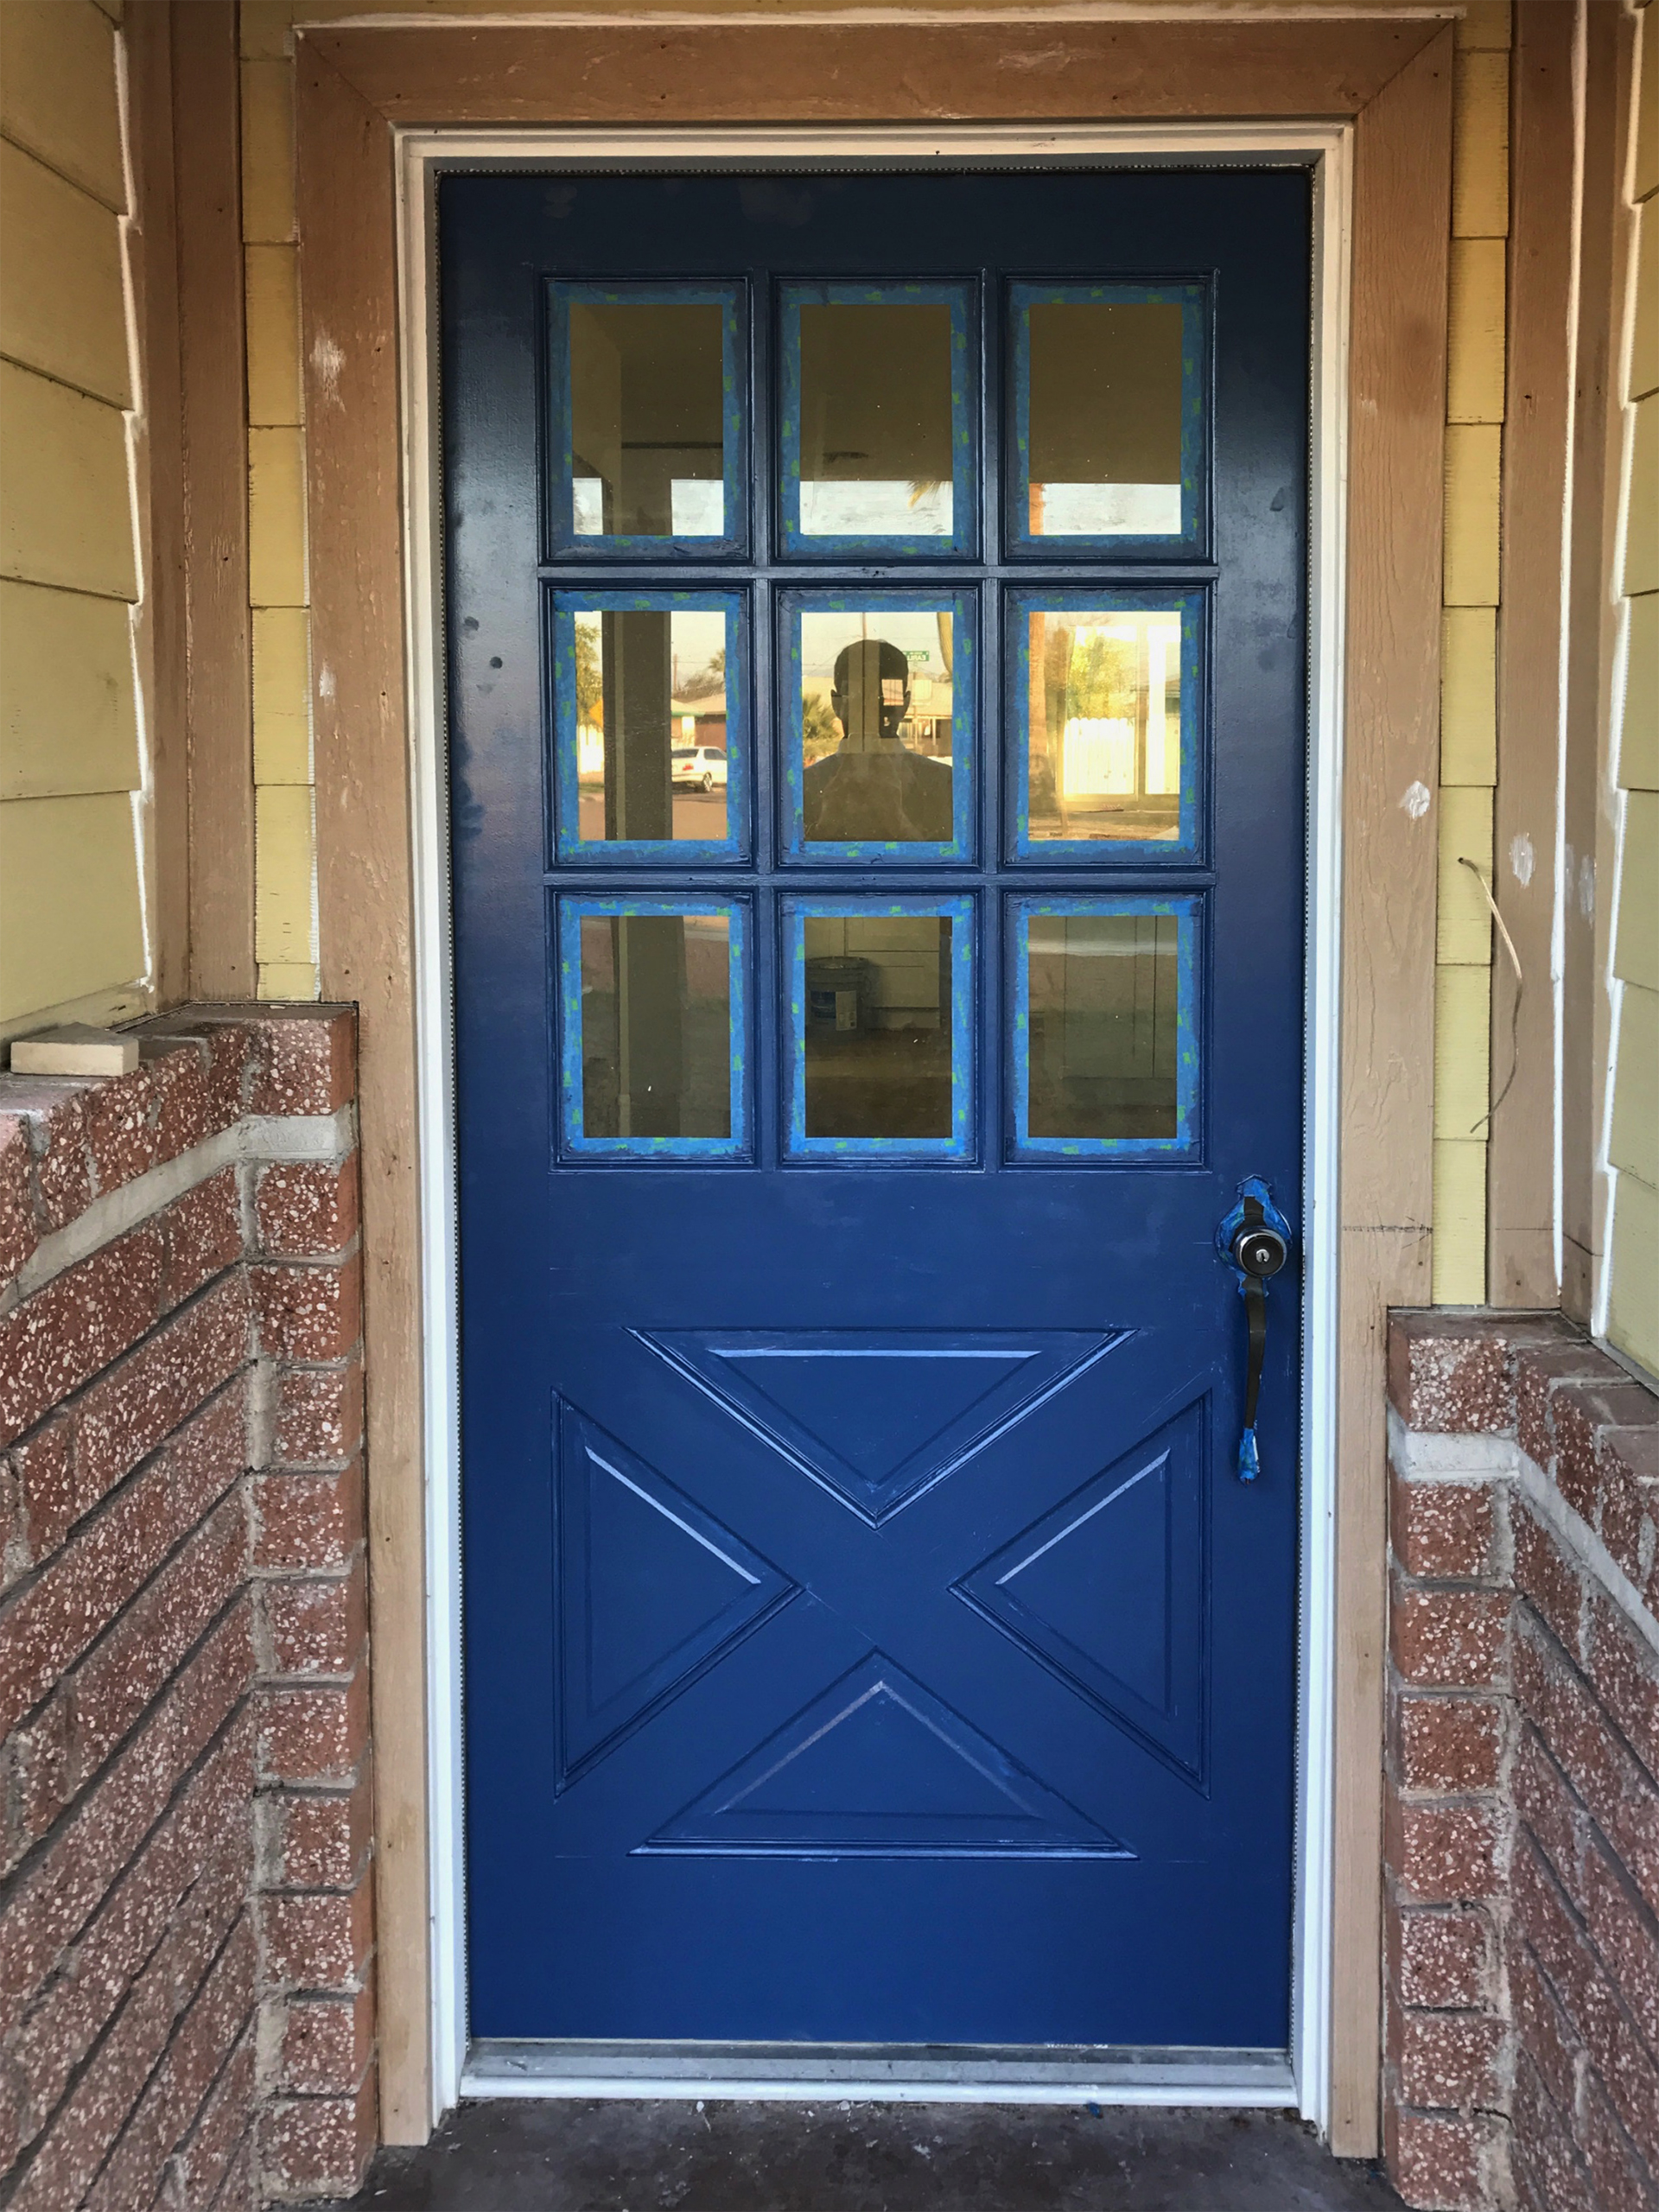 refinishing front doorHow to Refinish a Front Door the Right Way